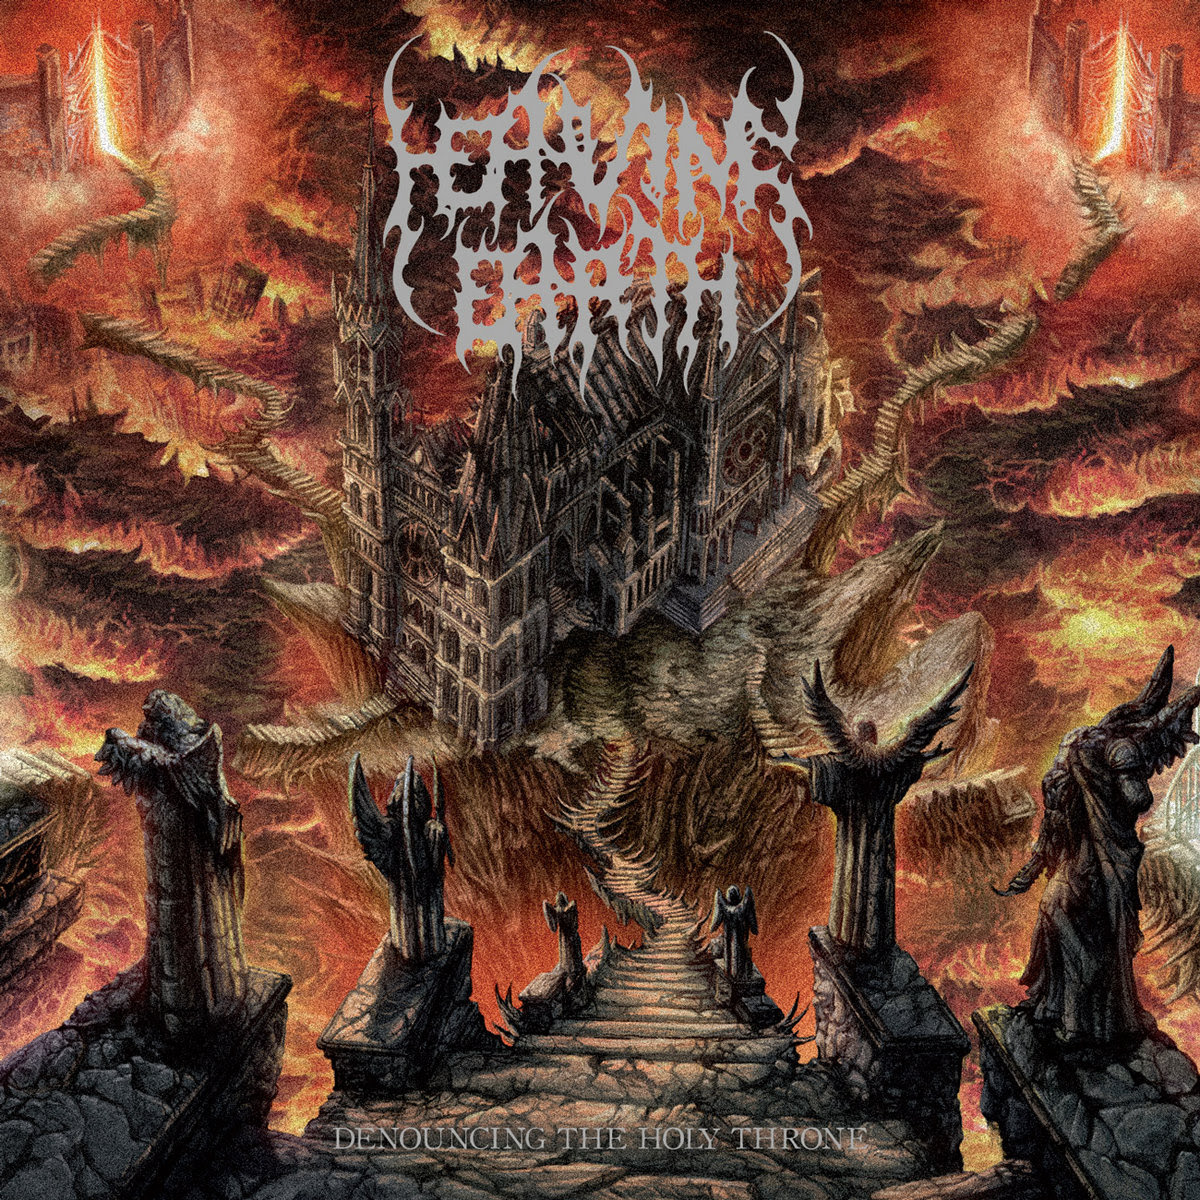 Heaving Earth - Denouncing the Holy Throne (2015)